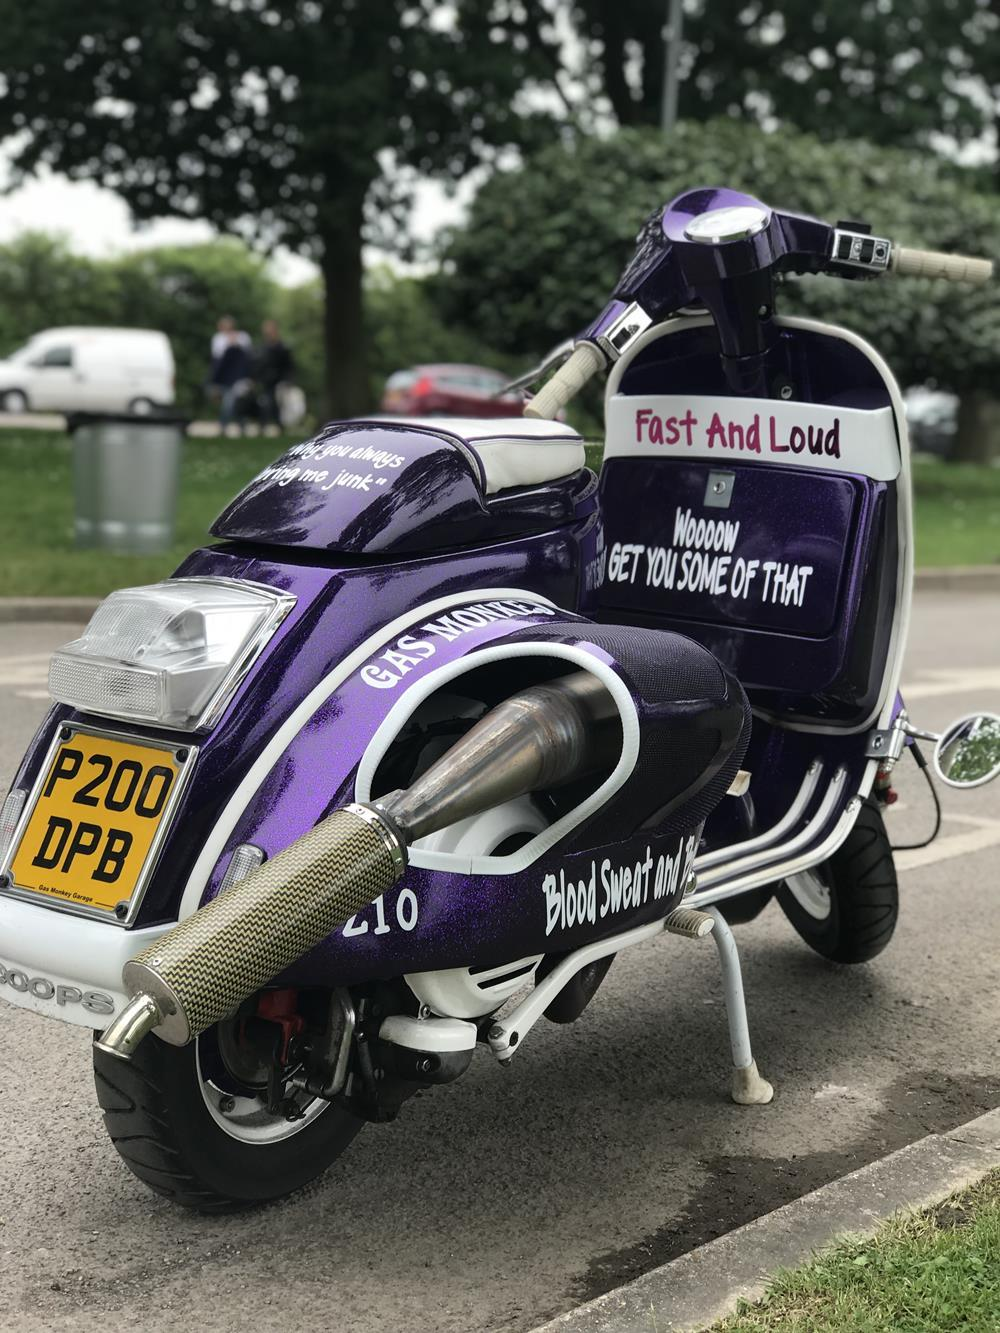 Hayling Island Scooter Rally 2018 : Diary Of A Detour